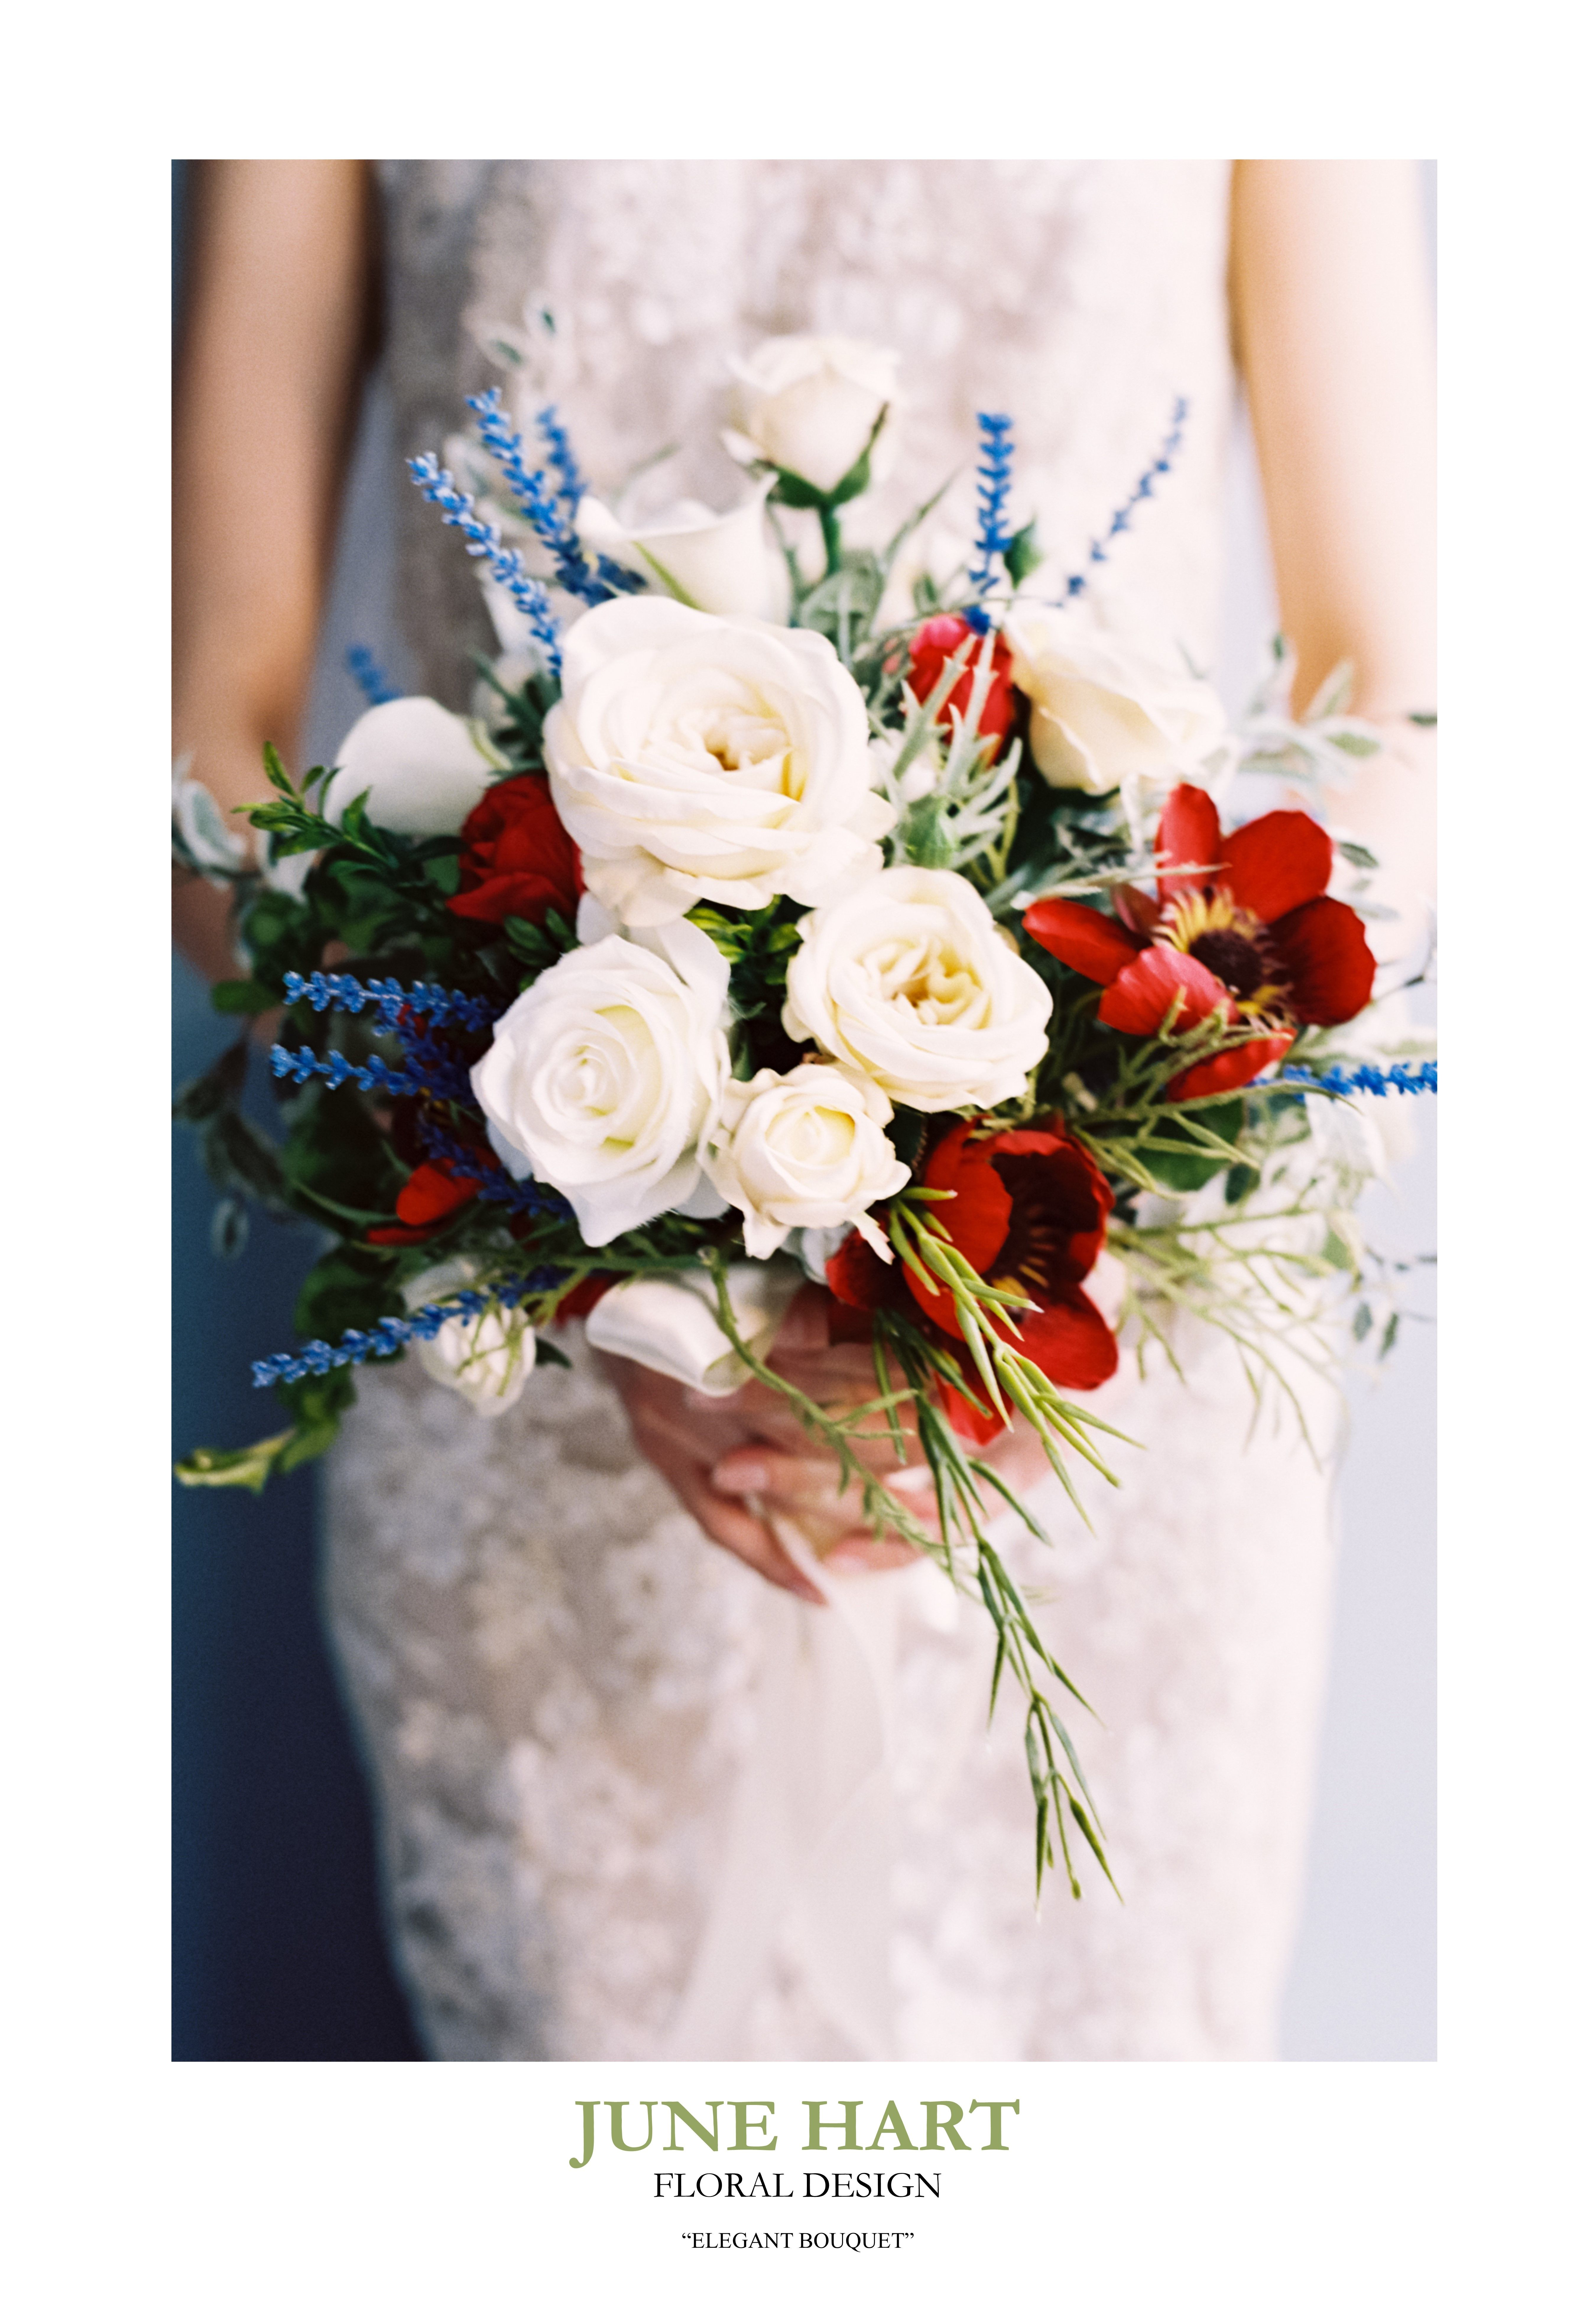 The Elegant Bouquet Is A Vintage Inspired Arrangement Of High